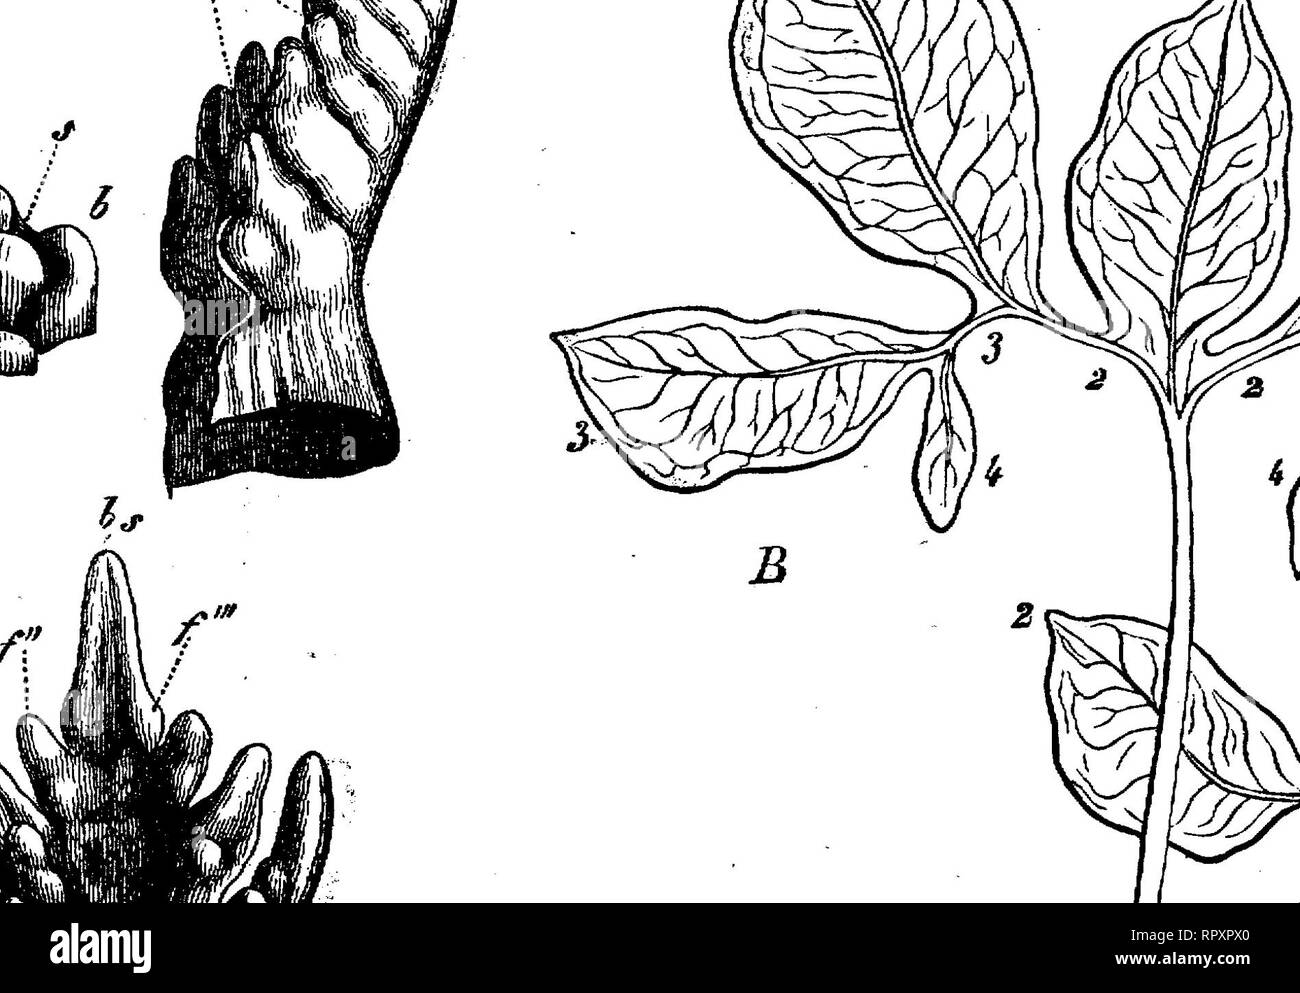 . Text-book of botany, morphological and physiological. Botany. 184 MORPHOLOGY OF MEMBERS. developes further only on one side, the new branches always arising either only on the left or only on the right side, 3 from 2, and 4 from 3; every lateral branch thus produces a sympodial system, and in fact a helicoid cyme. If now the basal pieces 2, 3, 4, combined in a sympodial manner on both lateral shoots, are imagined to be much shortened, so that the bases of the lobes 2, 3, 4 come close to the base of the lamina 1, then all the lobes of the leaf will appear to spring from one point, and the lea - Stock Image